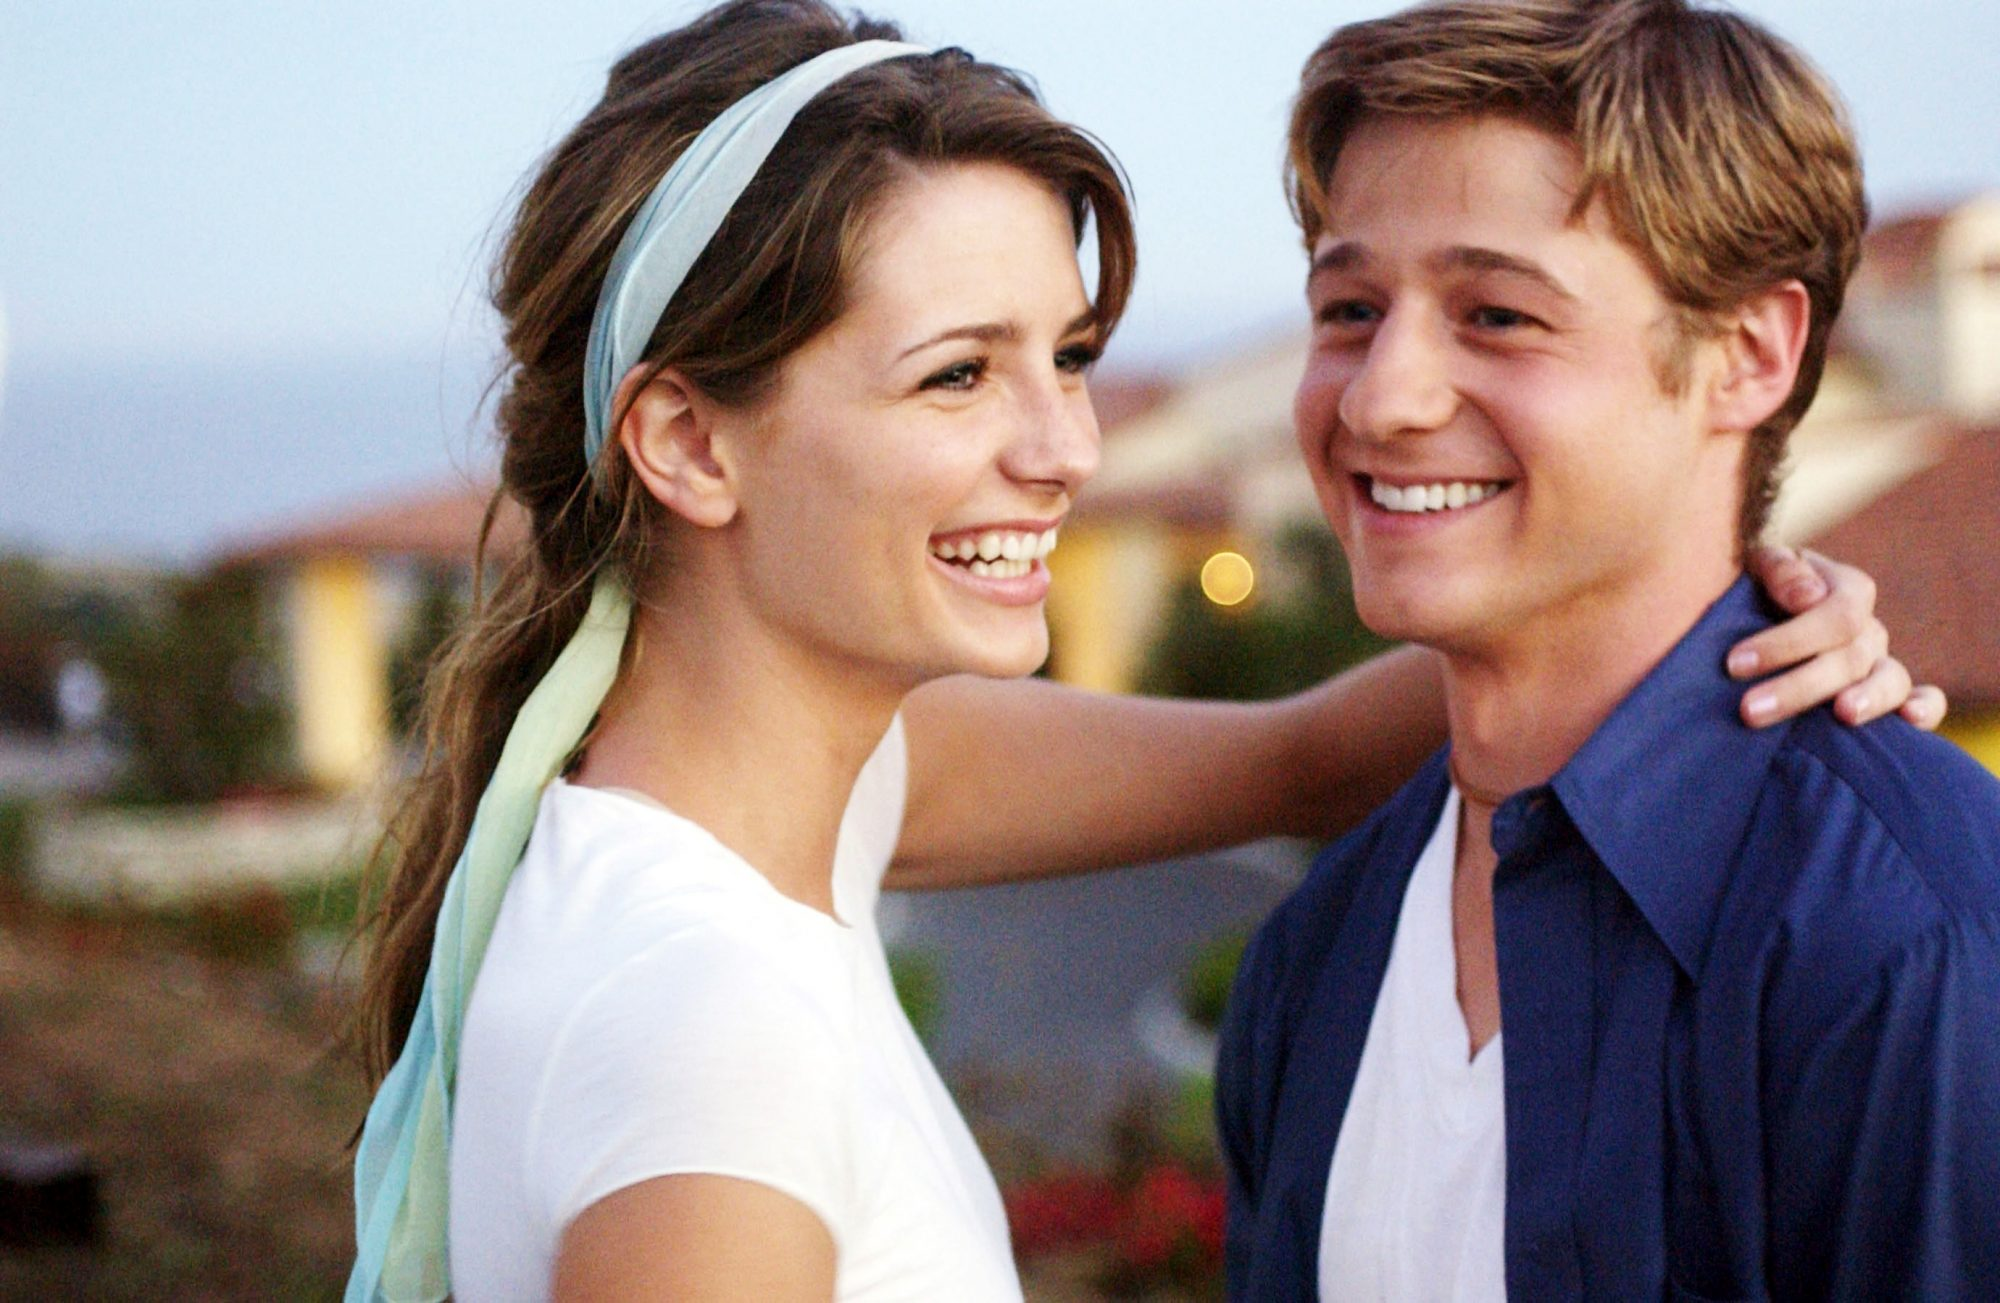 the oc tv show, ryan and marissa